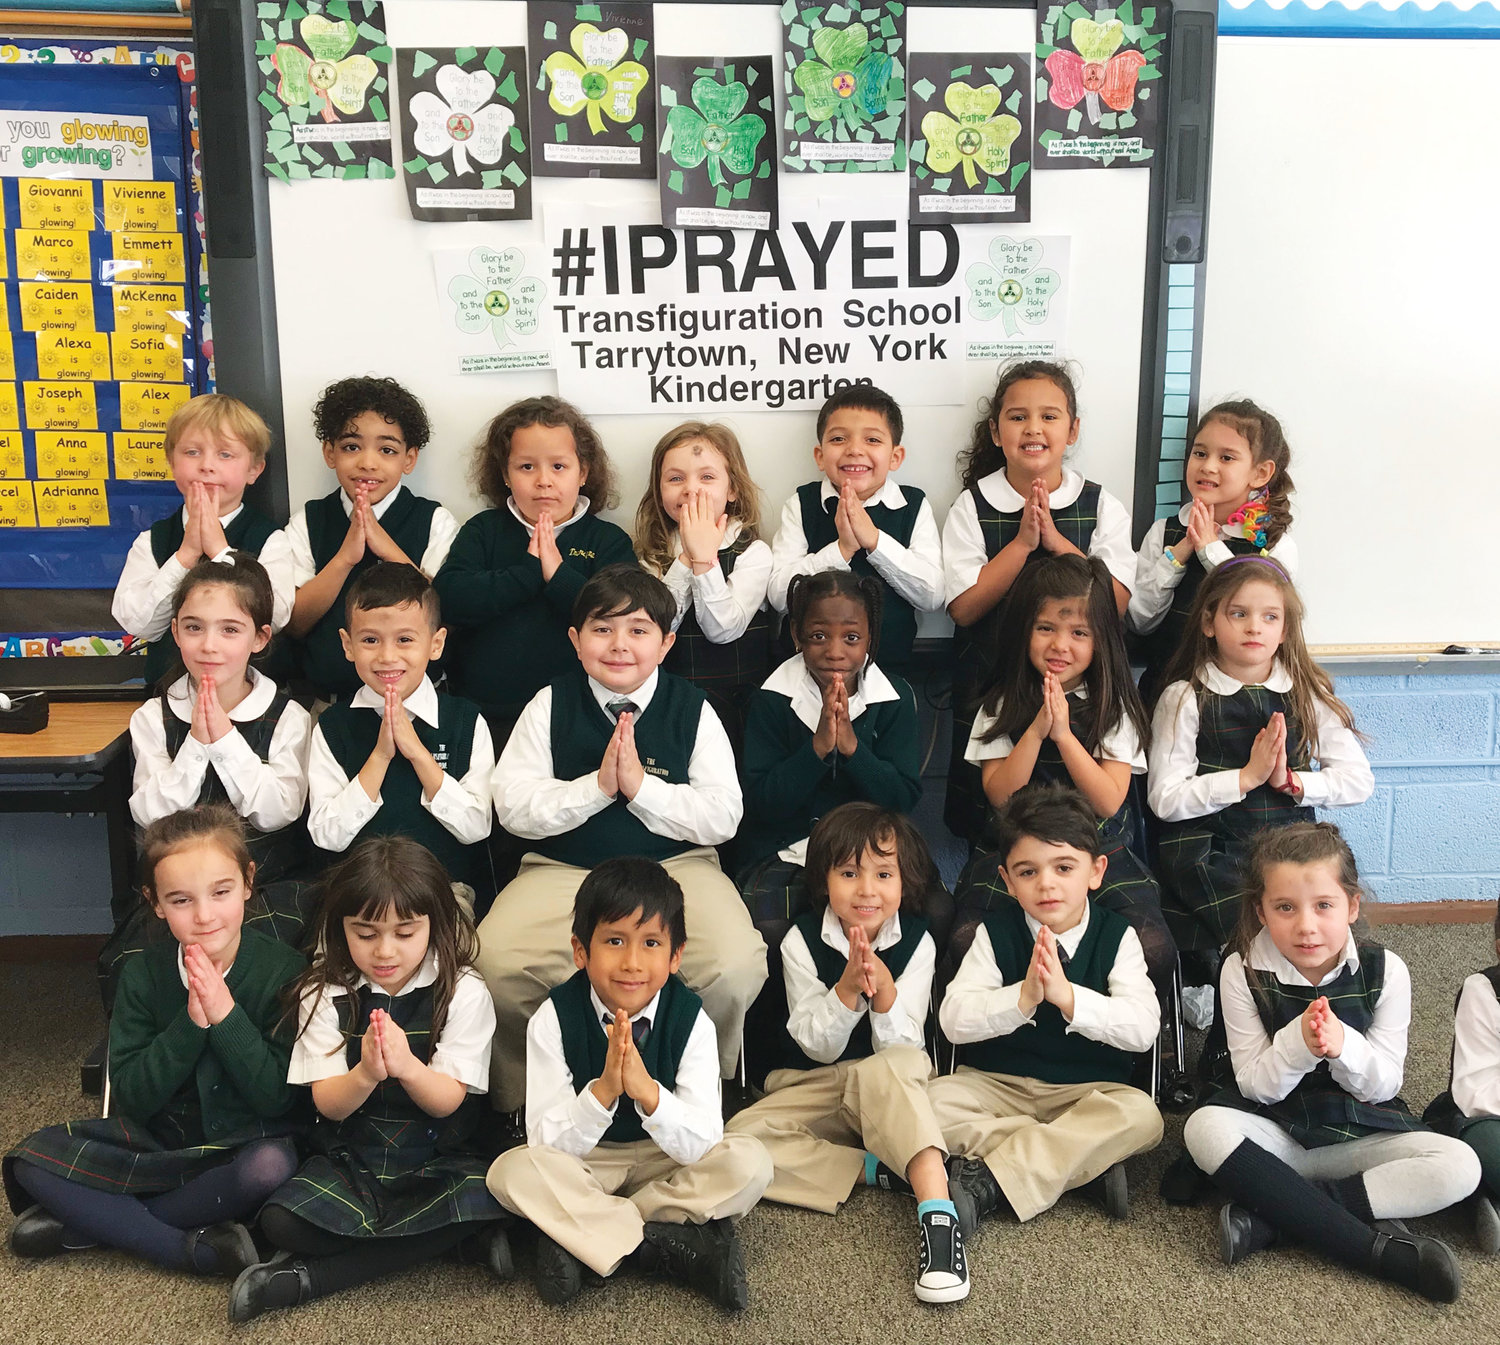 #IPRAYED—The kindergarten students in teacher Deborah McVey's class at Transfiguration School in Tarrytown fold their hands in prayer on Ash Wednesday, March 6.